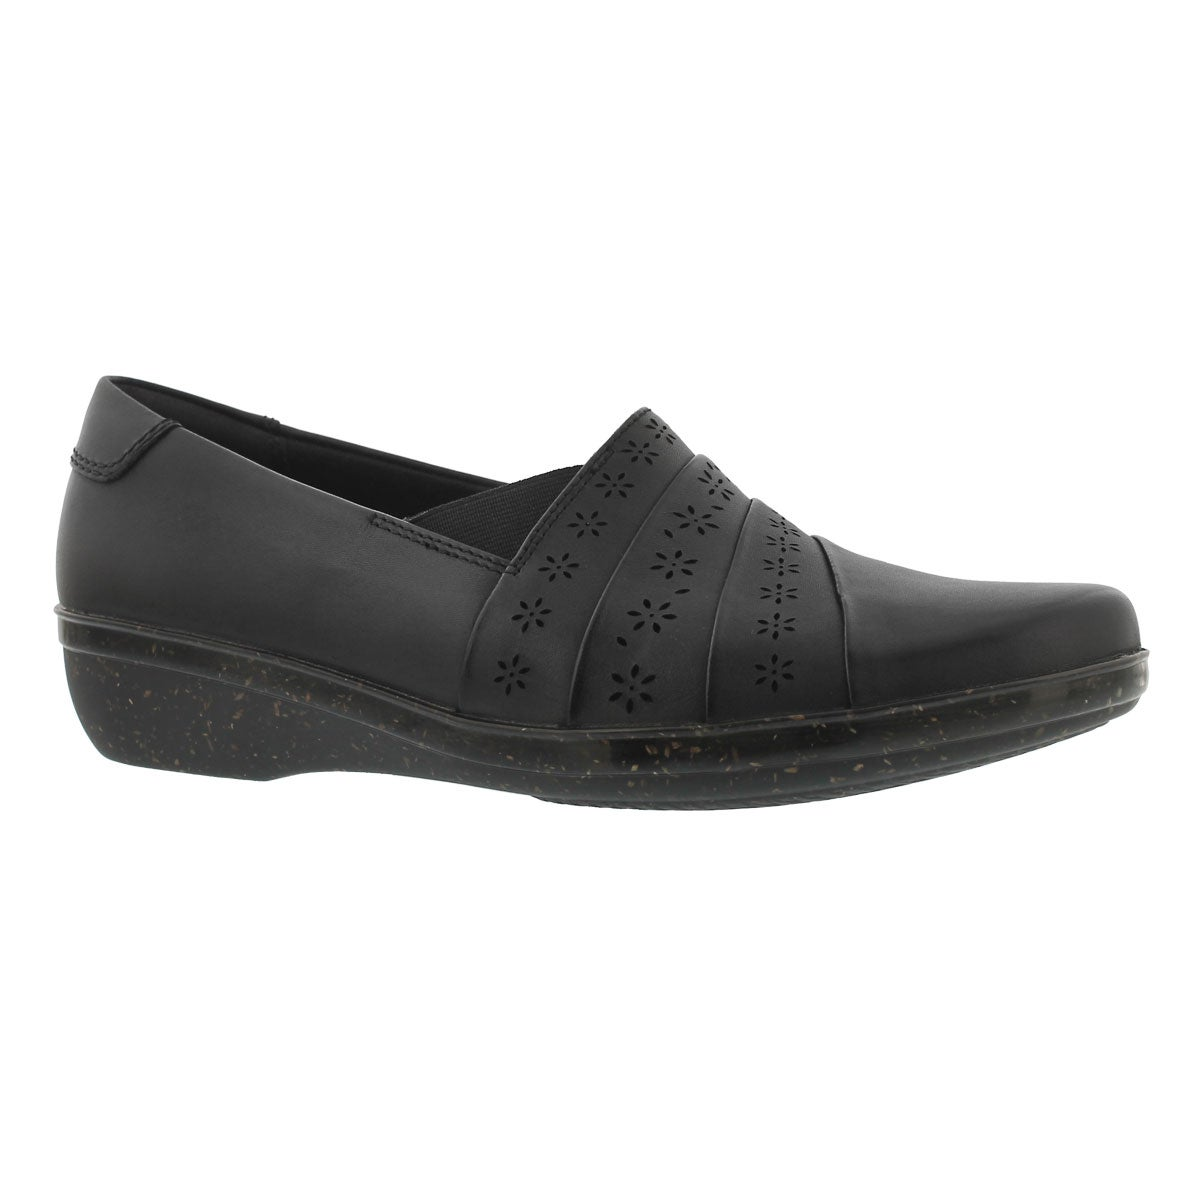 Lds Everlay Uma blk casual slip on- WIDE